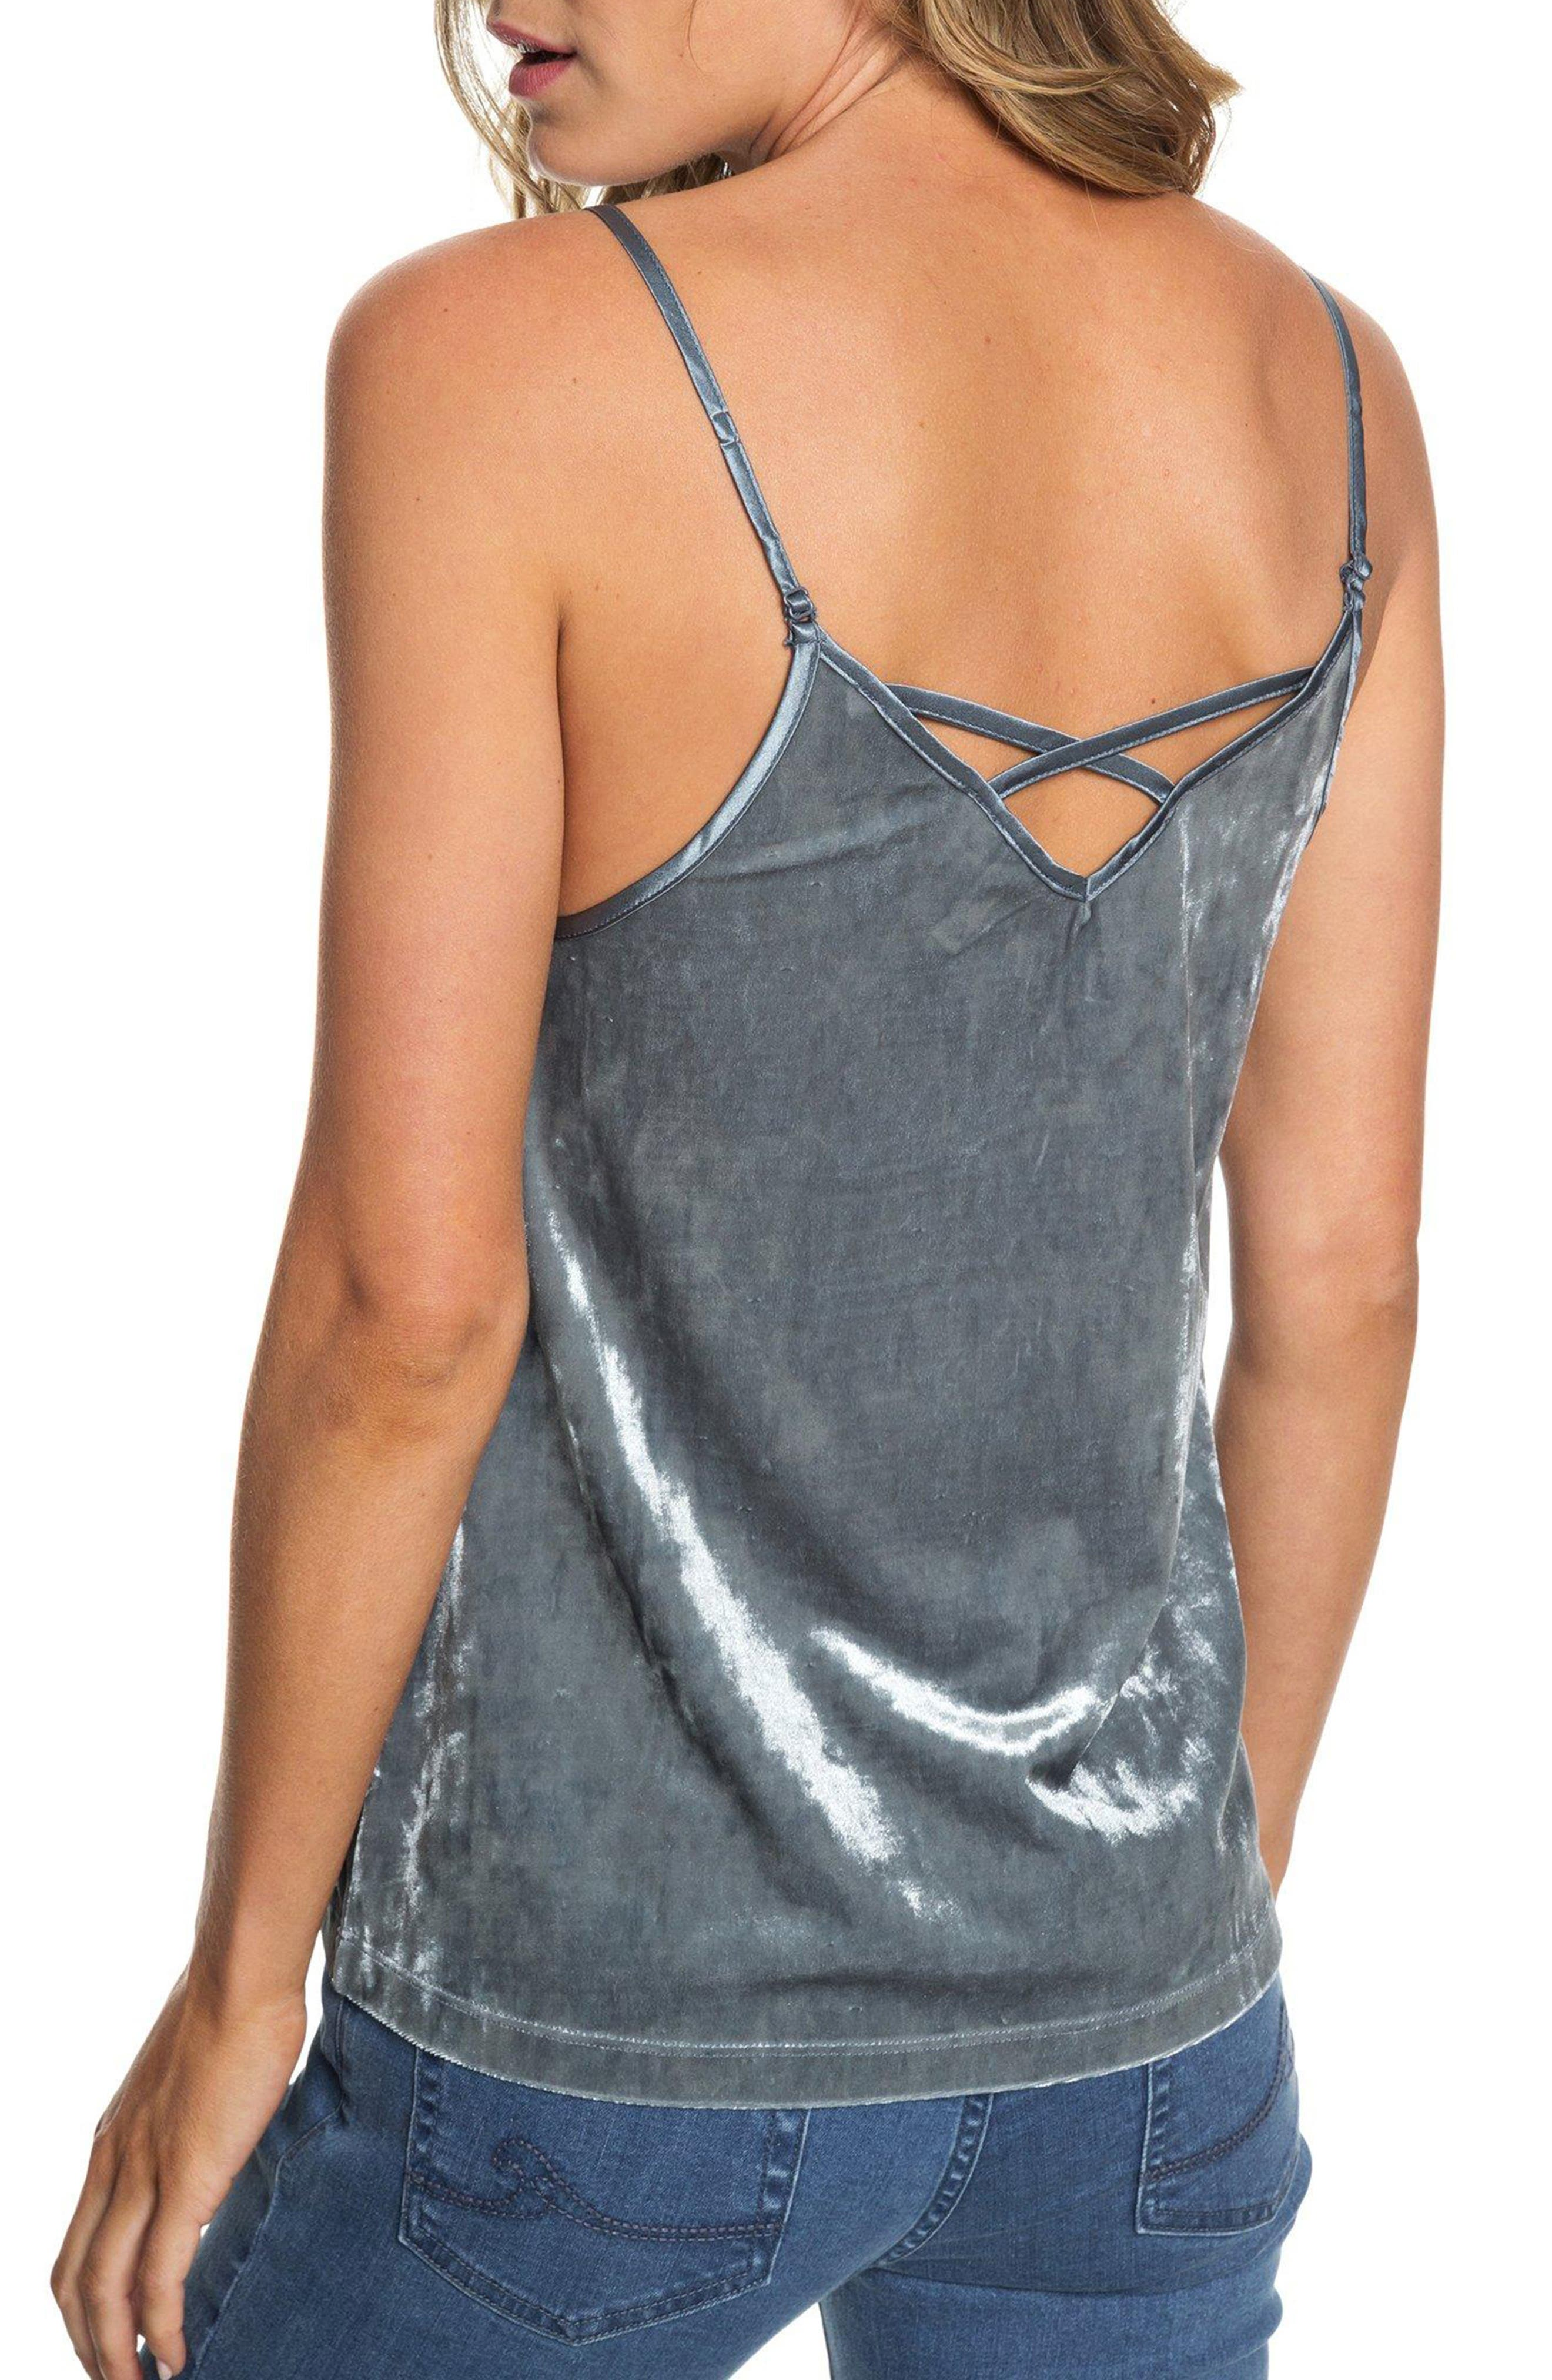 ROXY,                             You Are Pretty Velvet Camisole,                             Alternate thumbnail 2, color,                             TURBULENCE